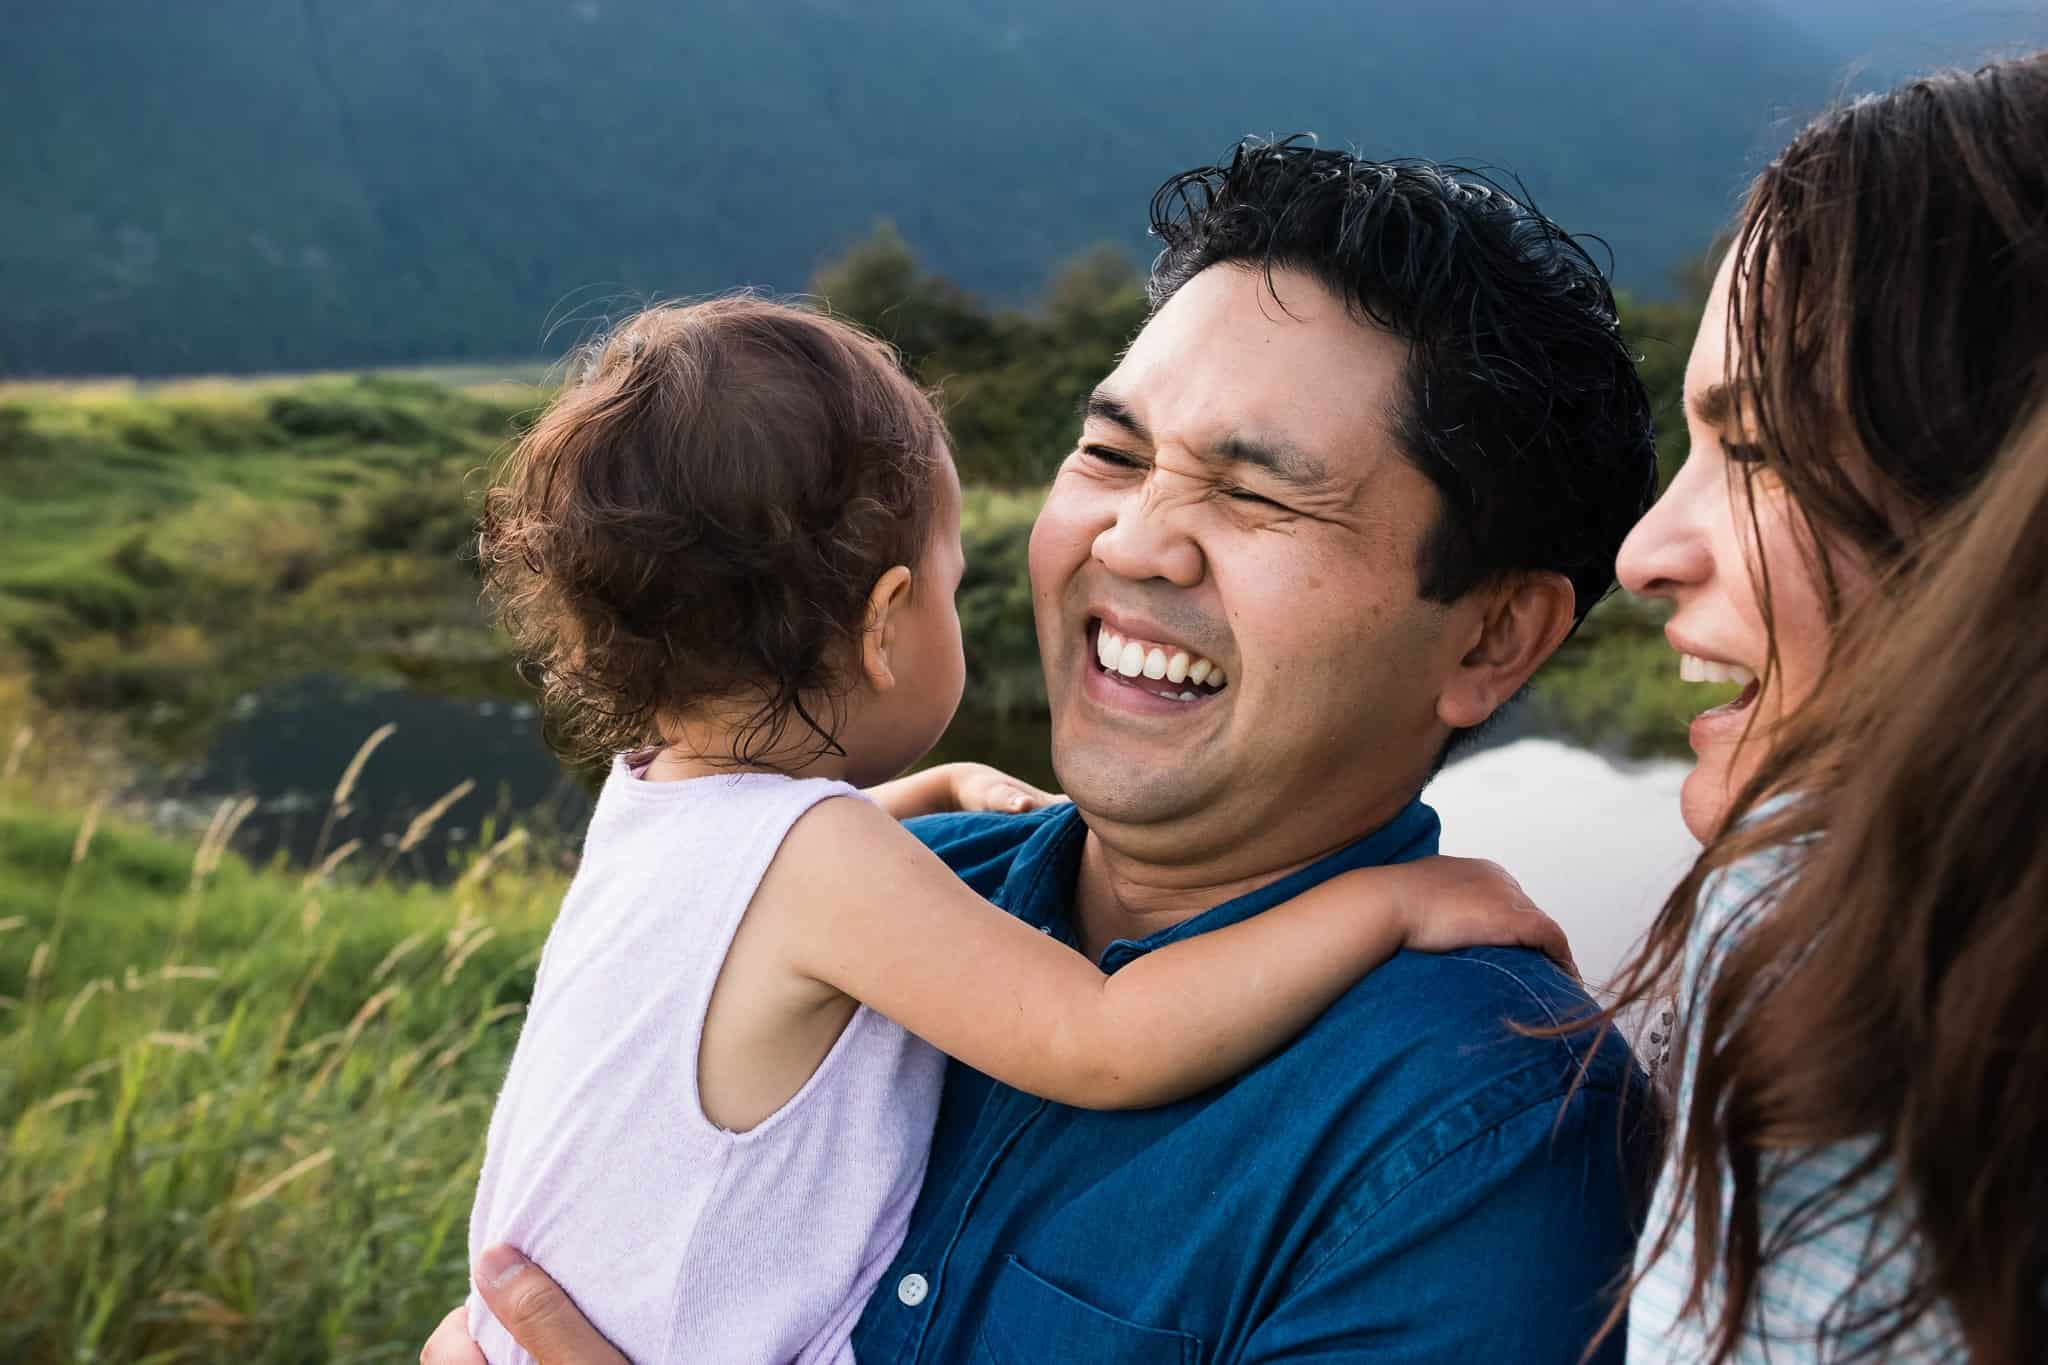 mom and dad laughing and hugging toddler girl